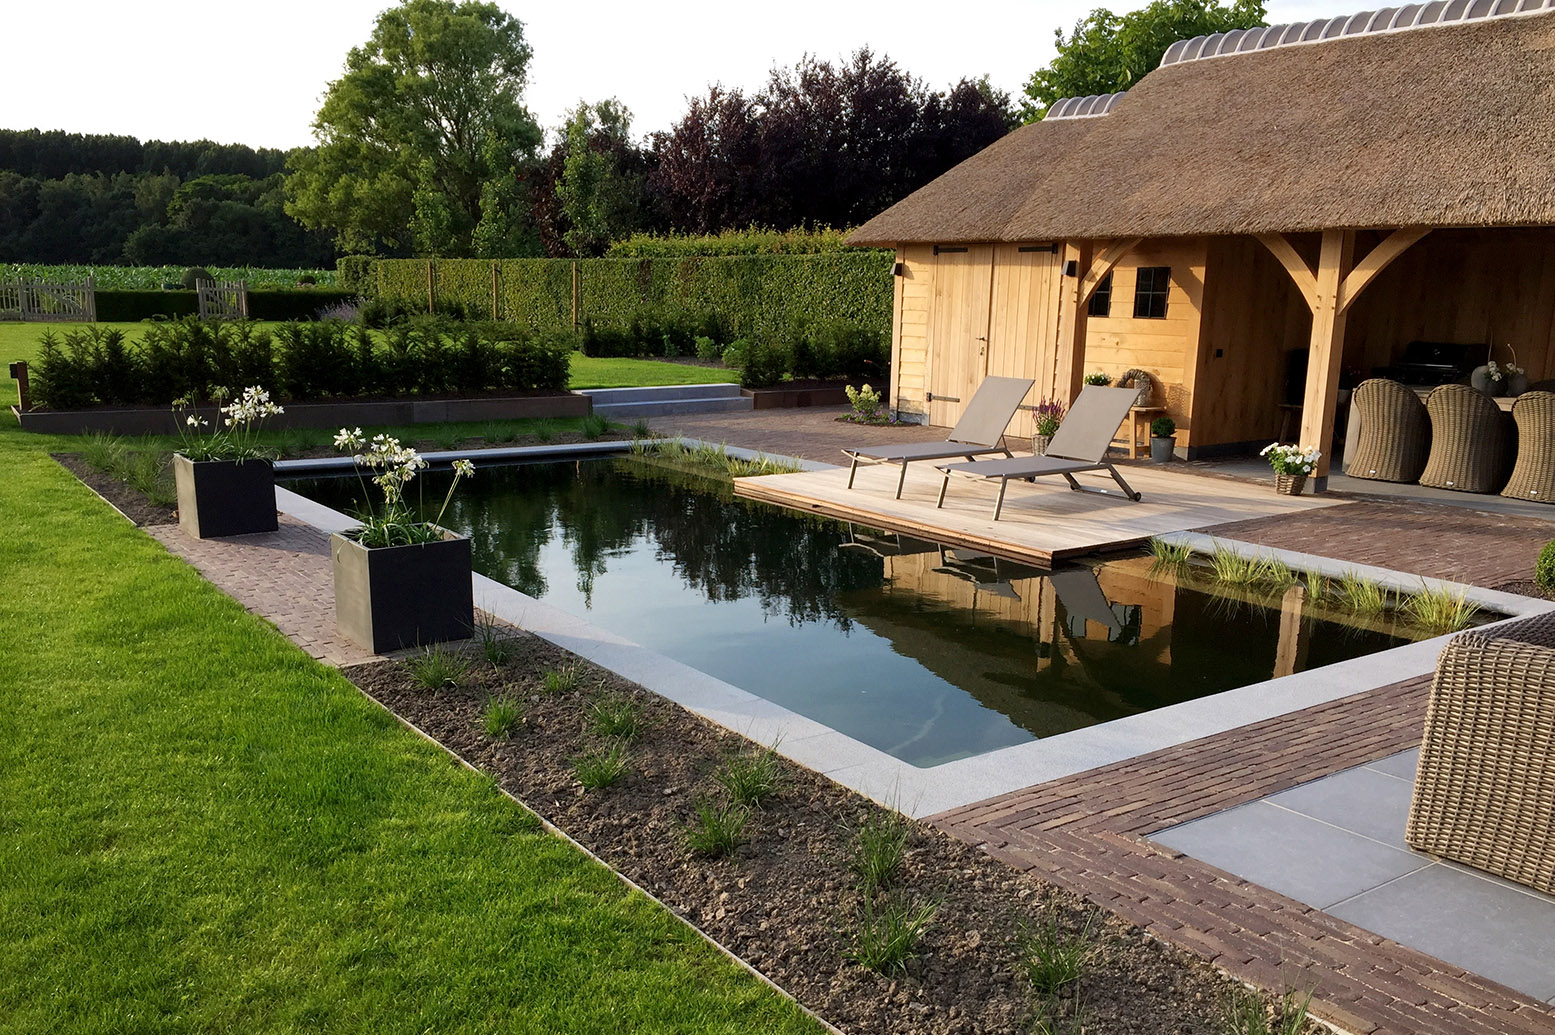 House Of Pool Piscine Et Pool House Avec Barbecue Quot Nulle Part Saddle Cycle Club Pool Of